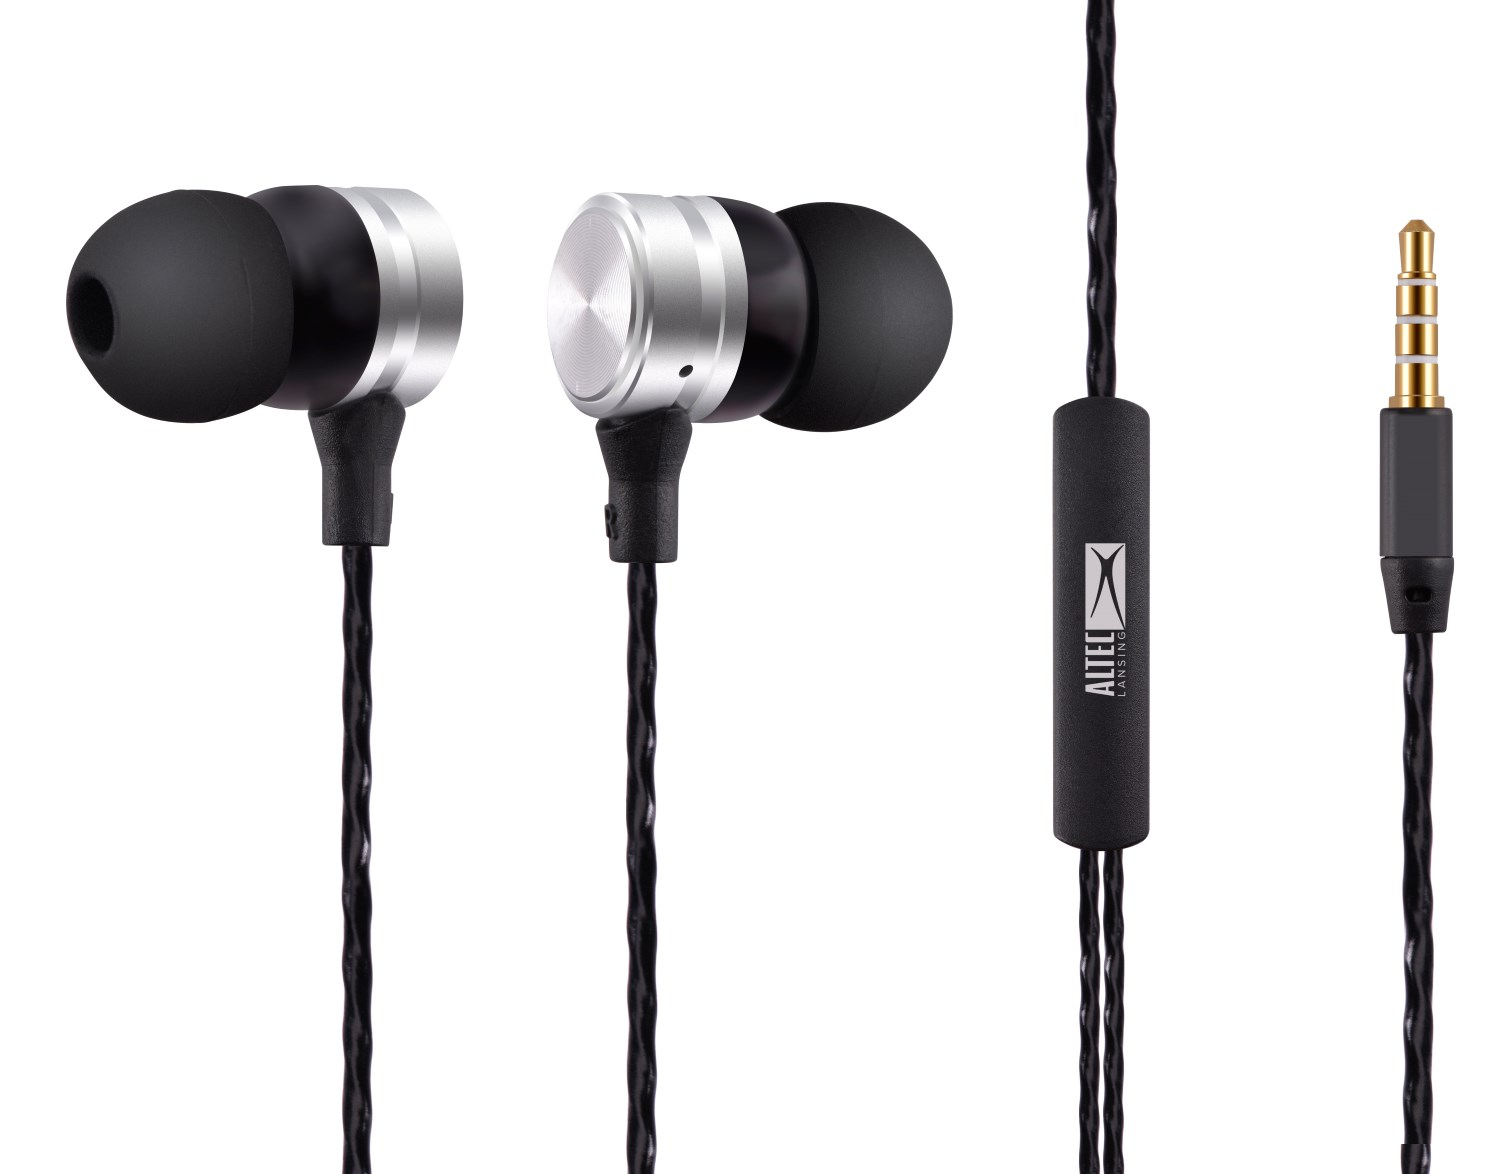 ALTEC LANSING earphones Inspire, mic, Button, 110dB, ασημί - ALTEC 21736